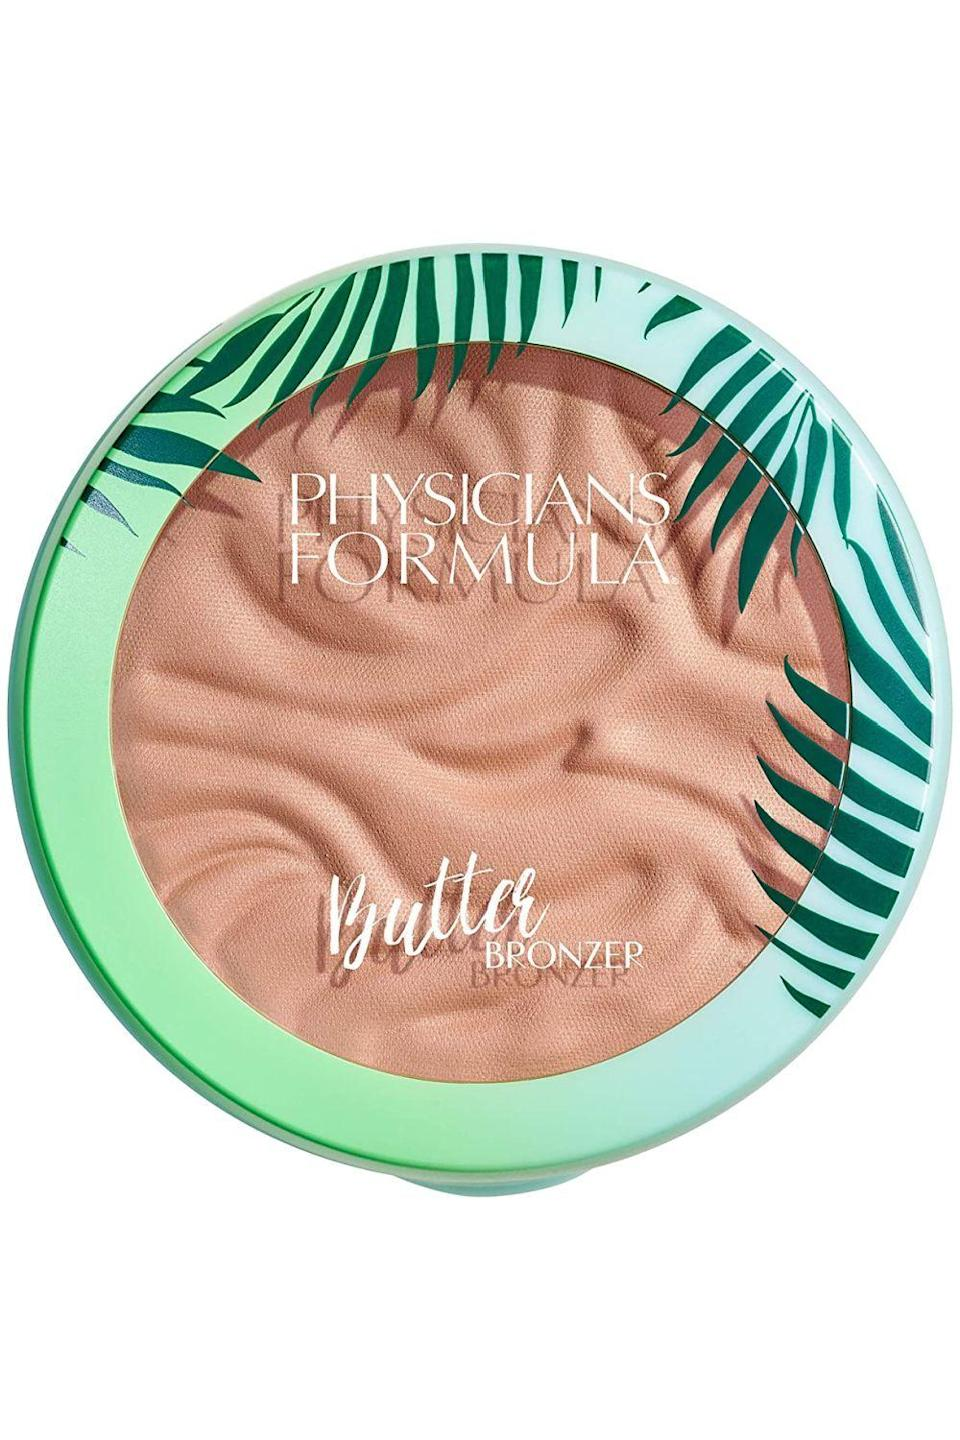 """<p><strong>Physicians Formula</strong></p><p>amazon.com</p><p><strong>$10.57</strong></p><p><a href=""""https://www.amazon.com/dp/B018B8Q5Z6?tag=syn-yahoo-20&ascsubtag=%5Bartid%7C10049.g.33904719%5Bsrc%7Cyahoo-us"""" rel=""""nofollow noopener"""" target=""""_blank"""" data-ylk=""""slk:shop"""" class=""""link rapid-noclick-resp"""">shop</a></p><p>Raise your hand if you love a good <a href=""""https://www.cosmopolitan.com/style-beauty/beauty/g15773998/best-drugstore-makeup-brands-products/"""" rel=""""nofollow noopener"""" target=""""_blank"""" data-ylk=""""slk:drugstore makeup"""" class=""""link rapid-noclick-resp"""">drugstore makeup</a> find. Good, so that makes everyone! If you <a href=""""https://www.cosmopolitan.com/style-beauty/beauty/advice/g1416/how-to-use-bronzer/"""" rel=""""nofollow noopener"""" target=""""_blank"""" data-ylk=""""slk:use bronzer"""" class=""""link rapid-noclick-resp"""">use bronzer</a> and have yet to try this deliciously scented formula, you're seriously missing out. </p>"""